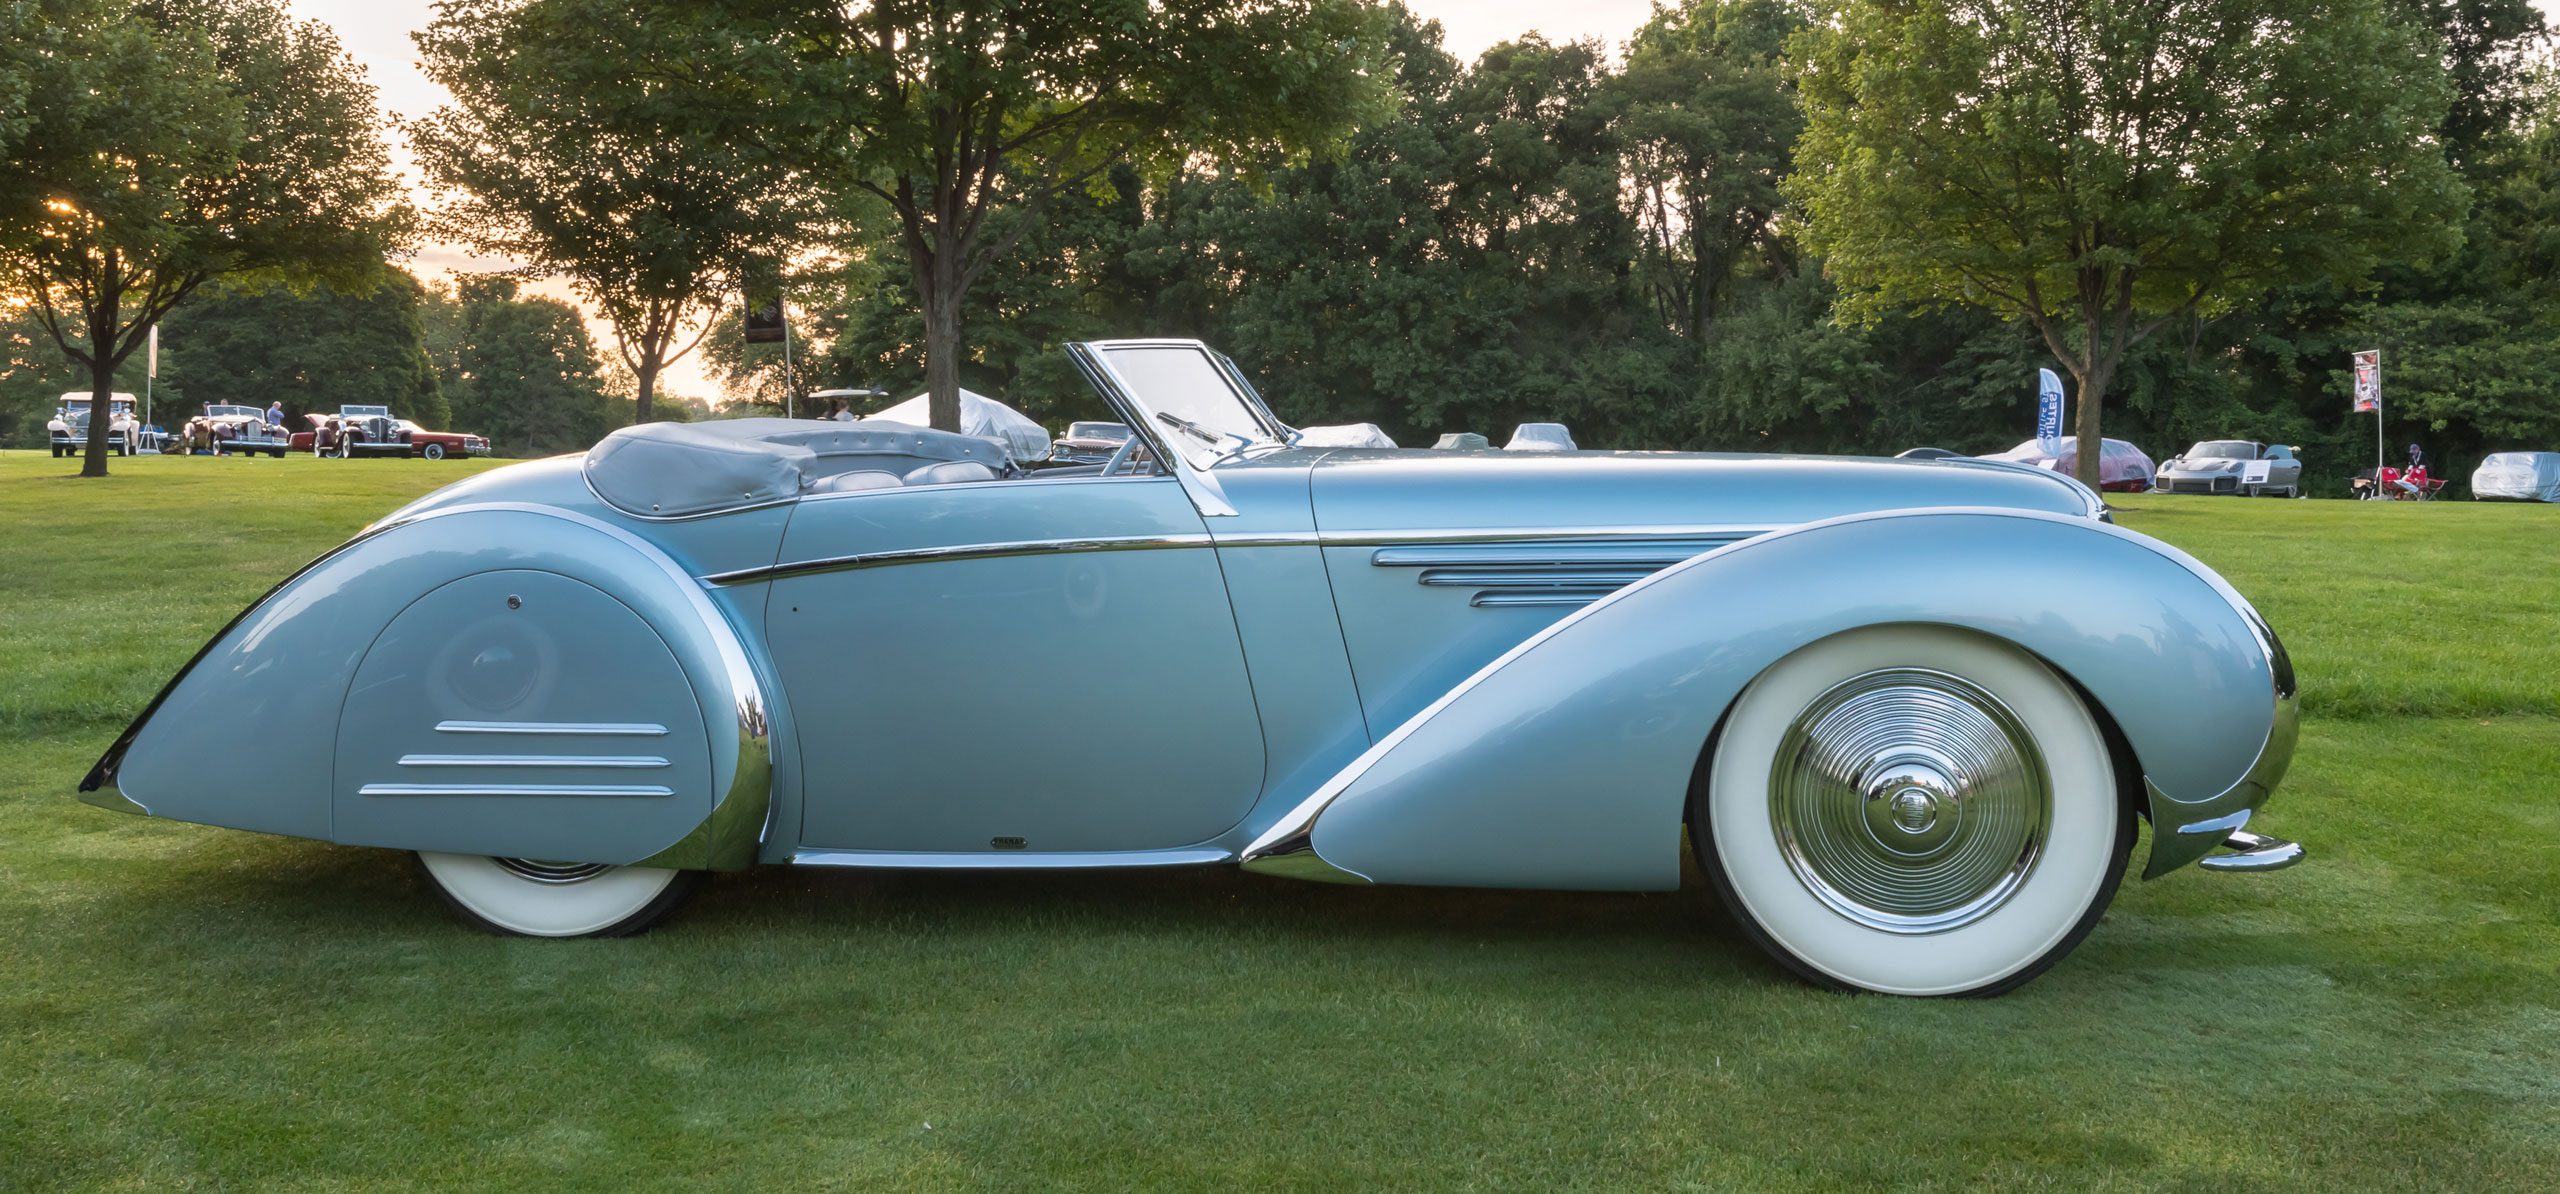 2020 Driving Force Summer Edition - Legislative Front Lines. Pictured Concours-level Delahaye